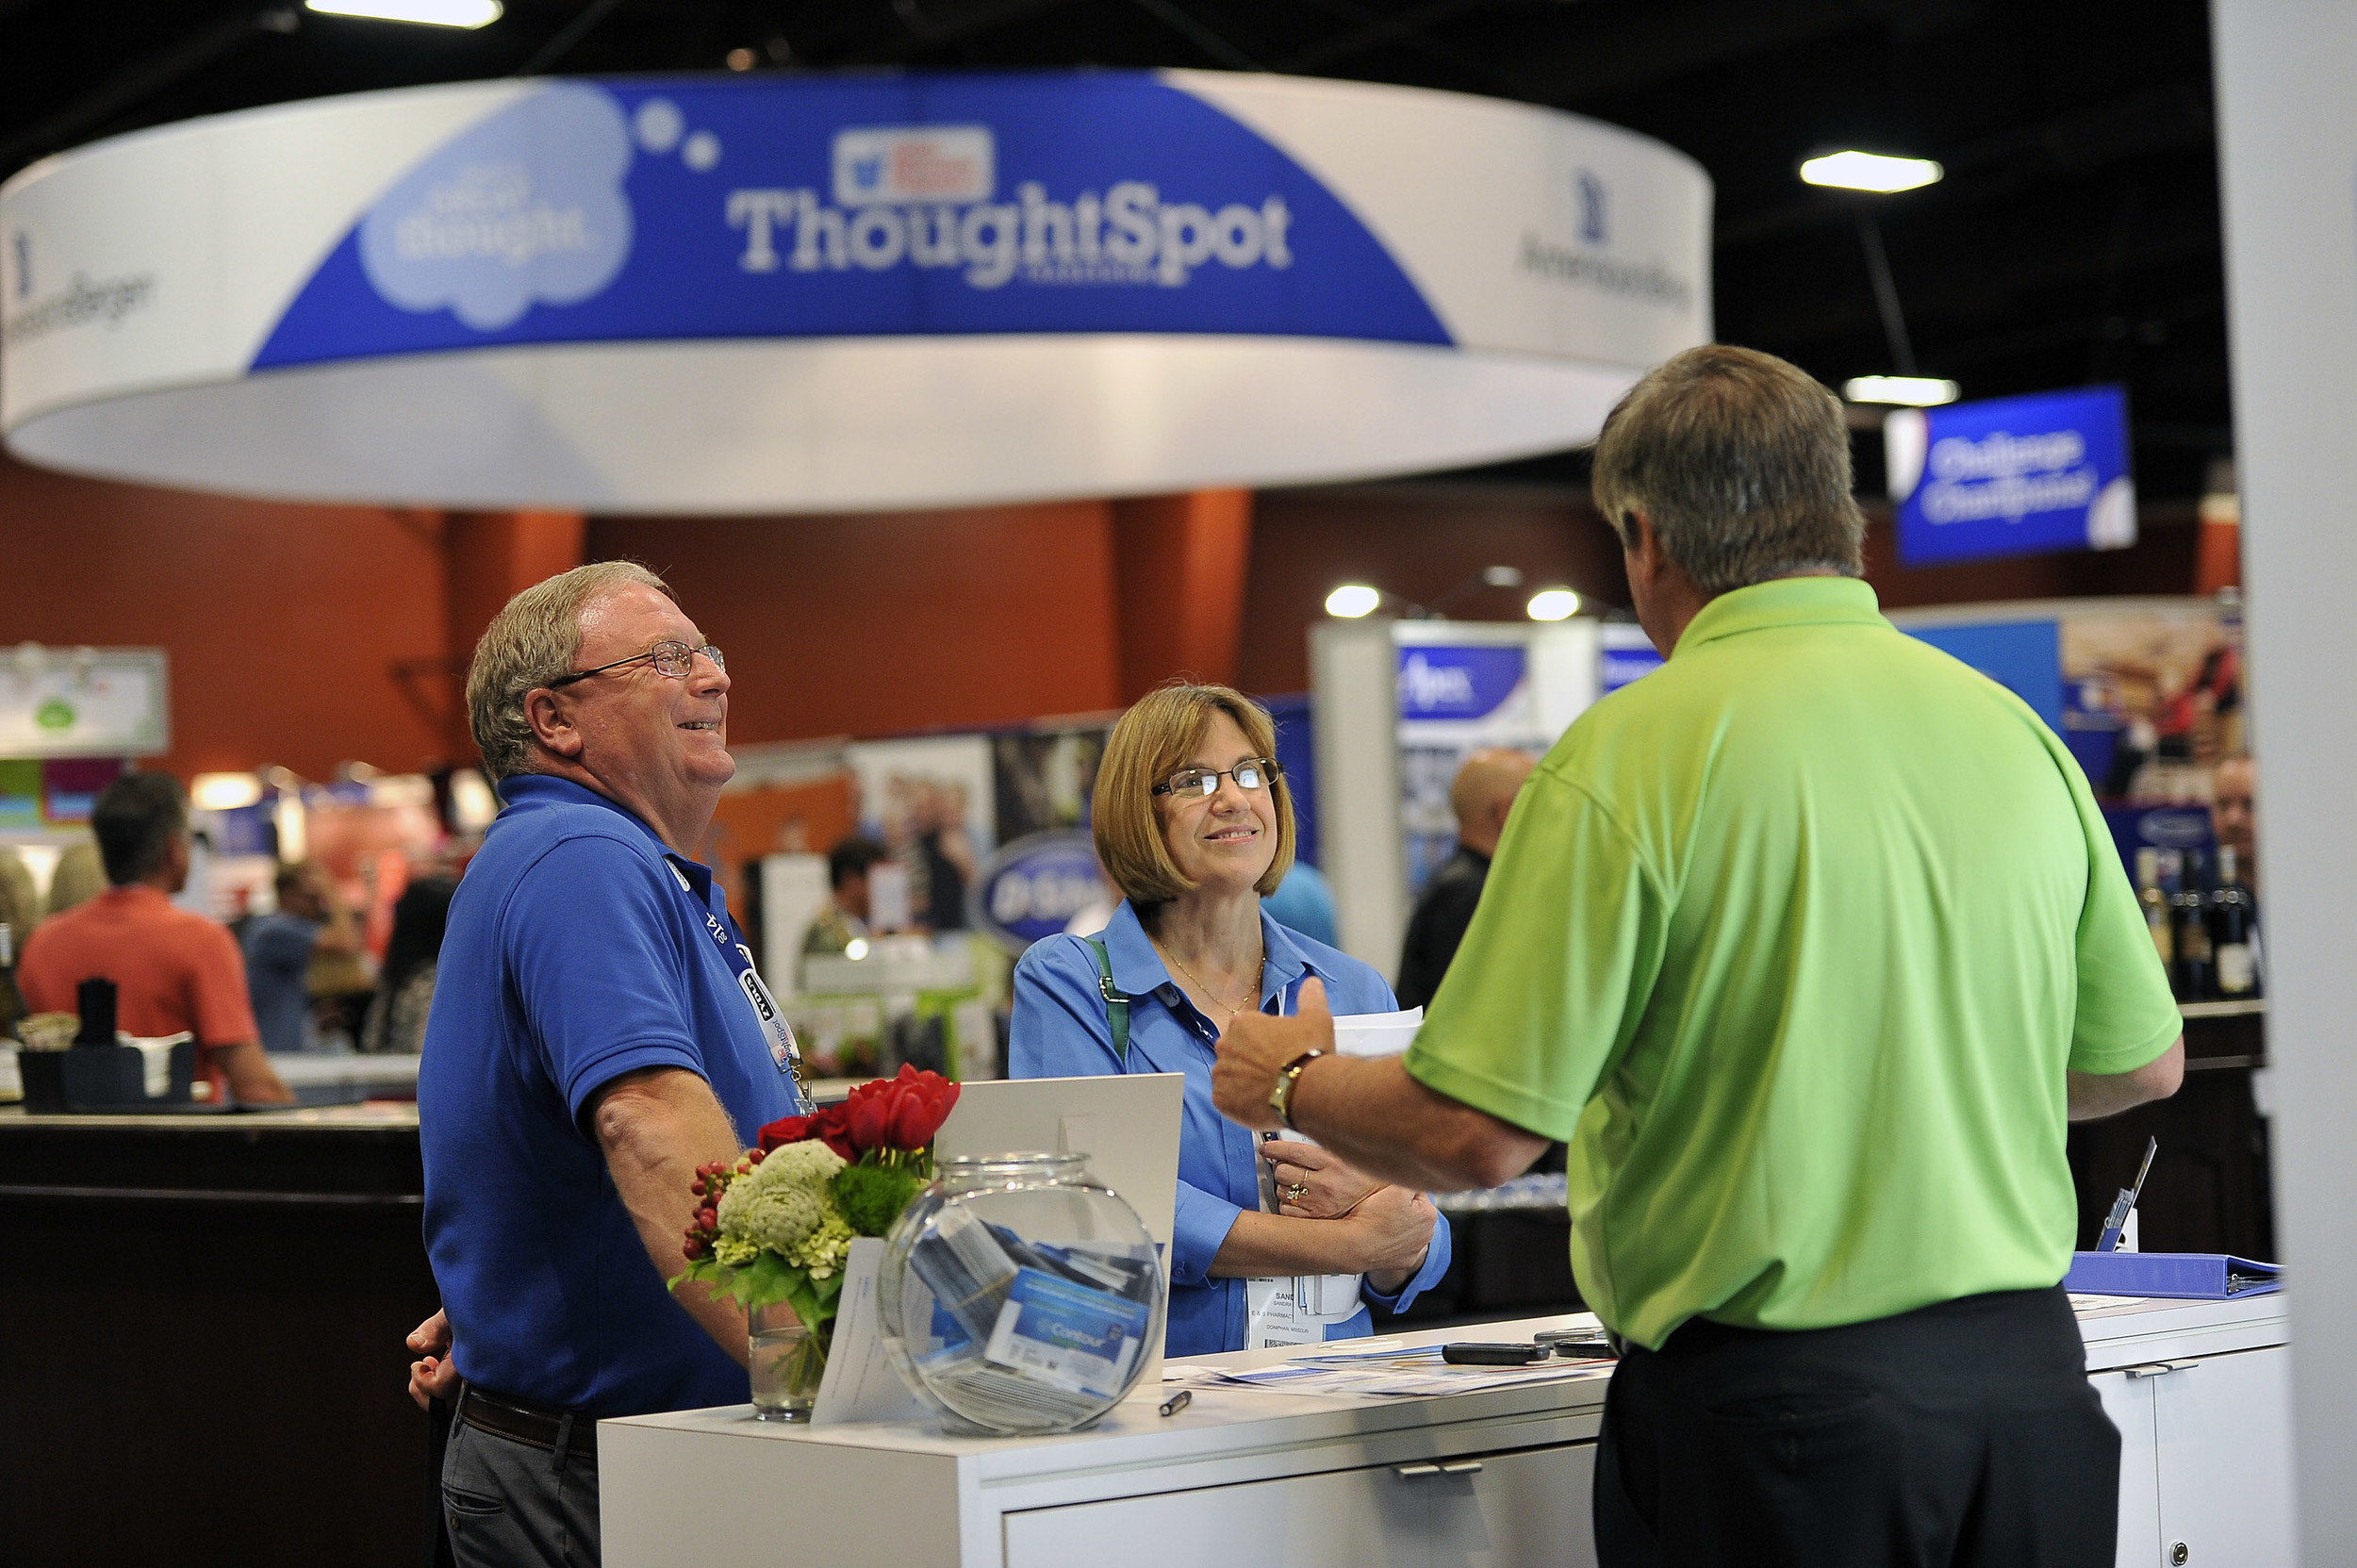 ThoughtSpot_TradeShow_0034.jpg